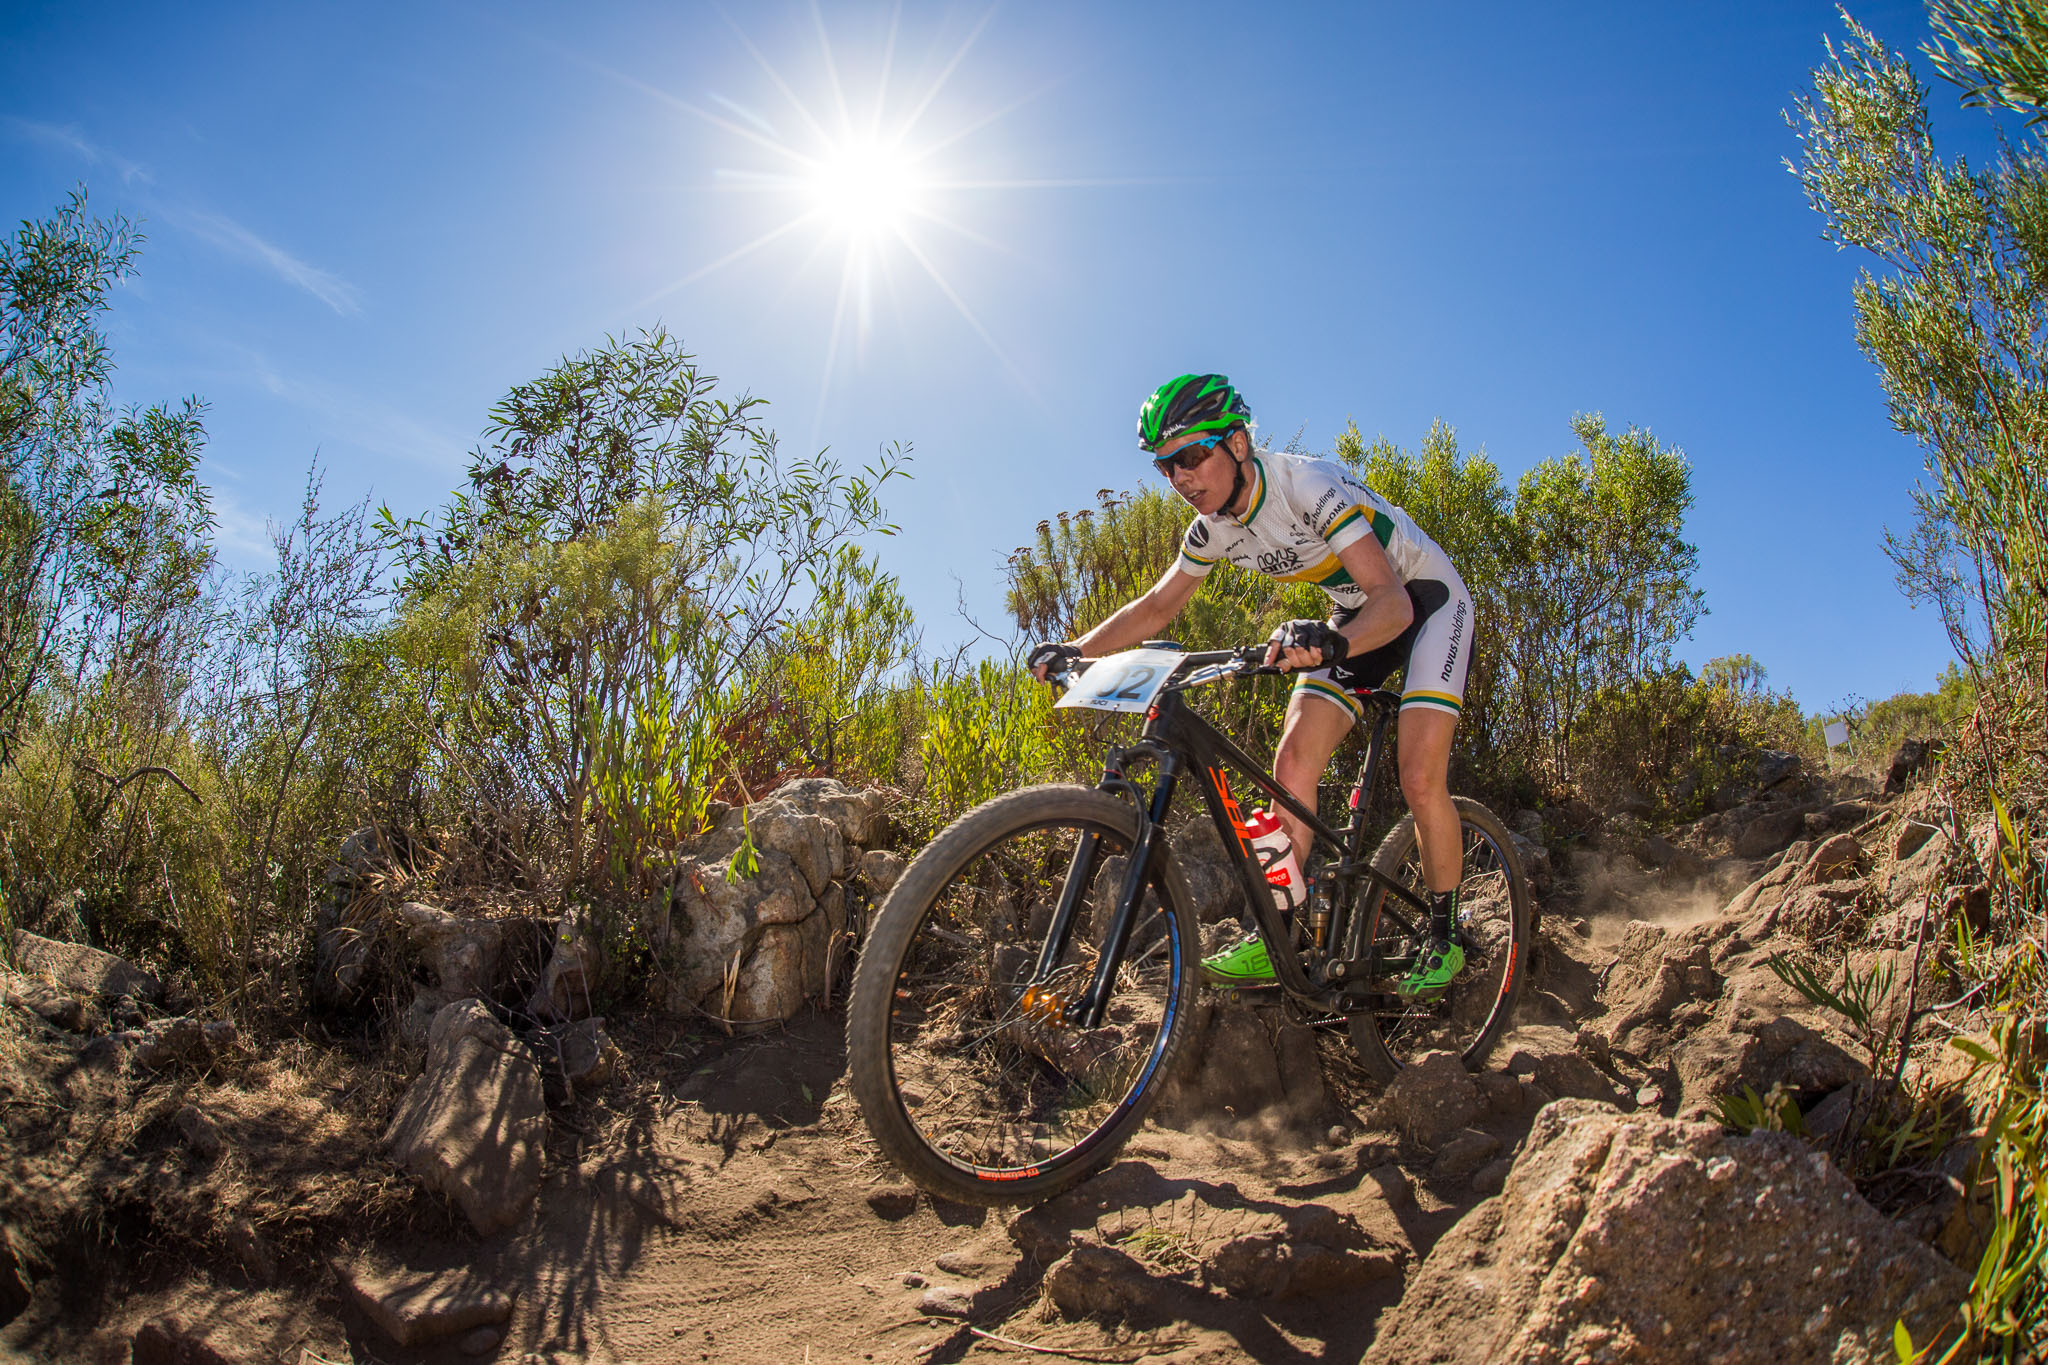 South African Women's Cross-country Champion, Cherie Vale (Novus OMX Pro Team), will be among the country's great MTB enthusiasts at the Stihl 2016 SA XCO Cup Series, which takes place at Wolwespruit Bike Park in Erasmuskloof, Pretoria on Saturday 26 march. Photo: Chris Hitchcock